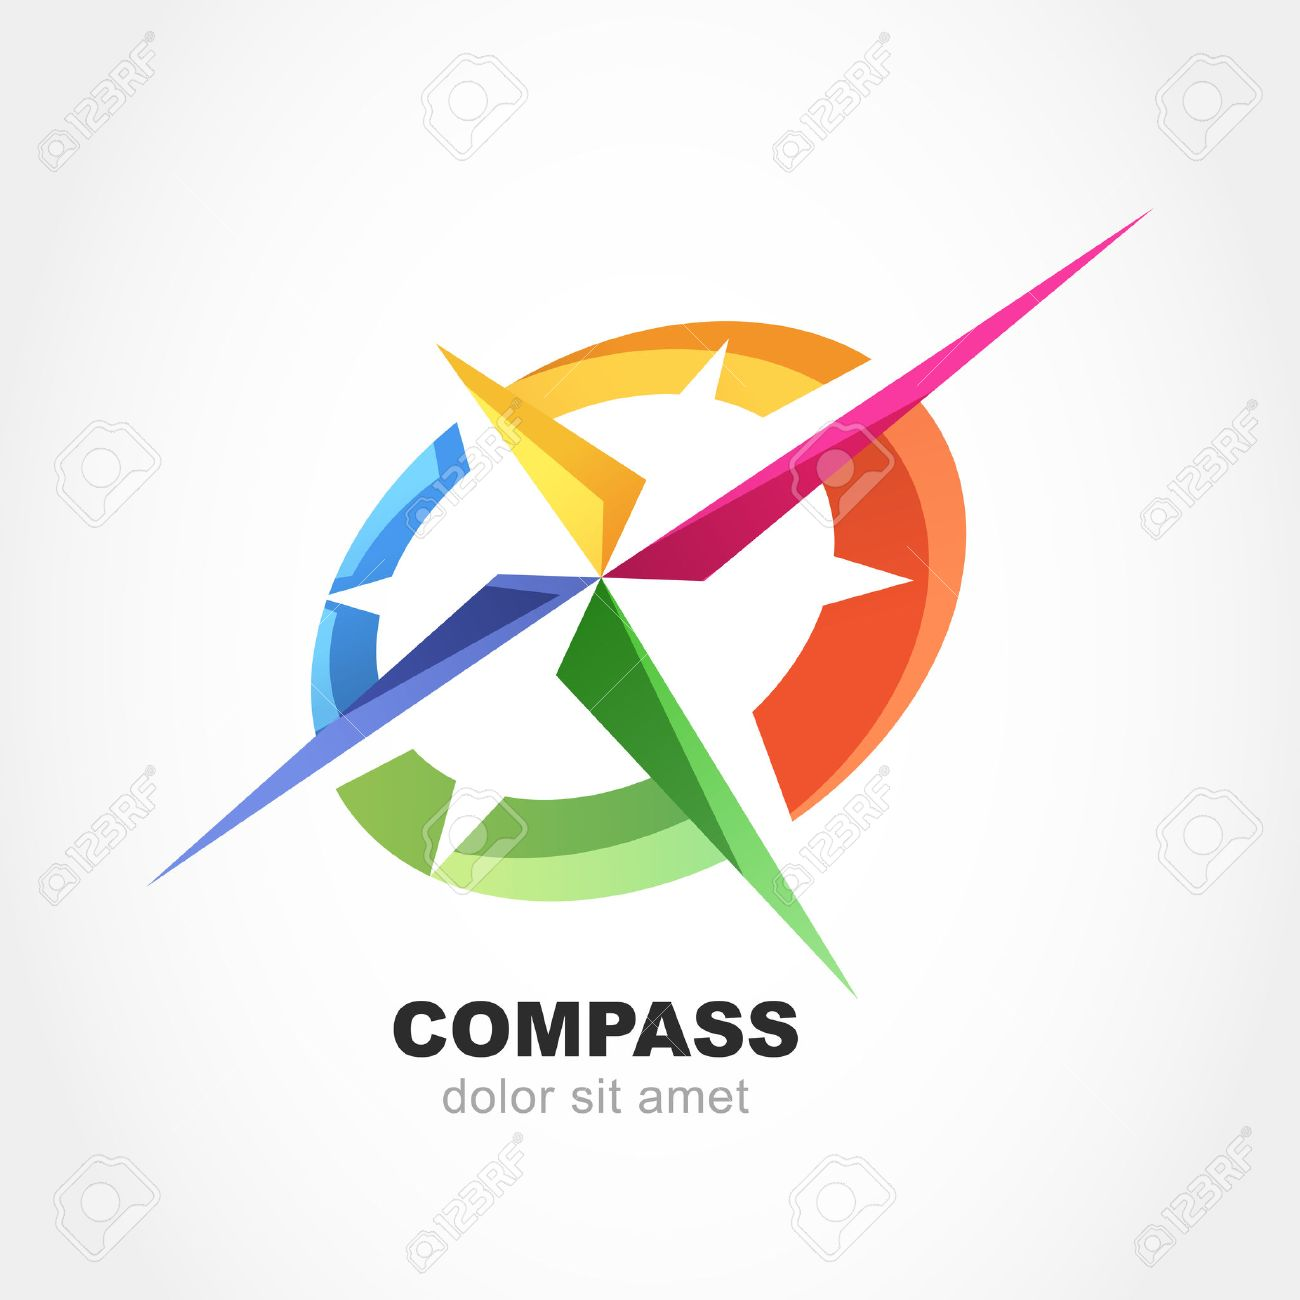 Compass Stock Photos Royalty Free Compass Images